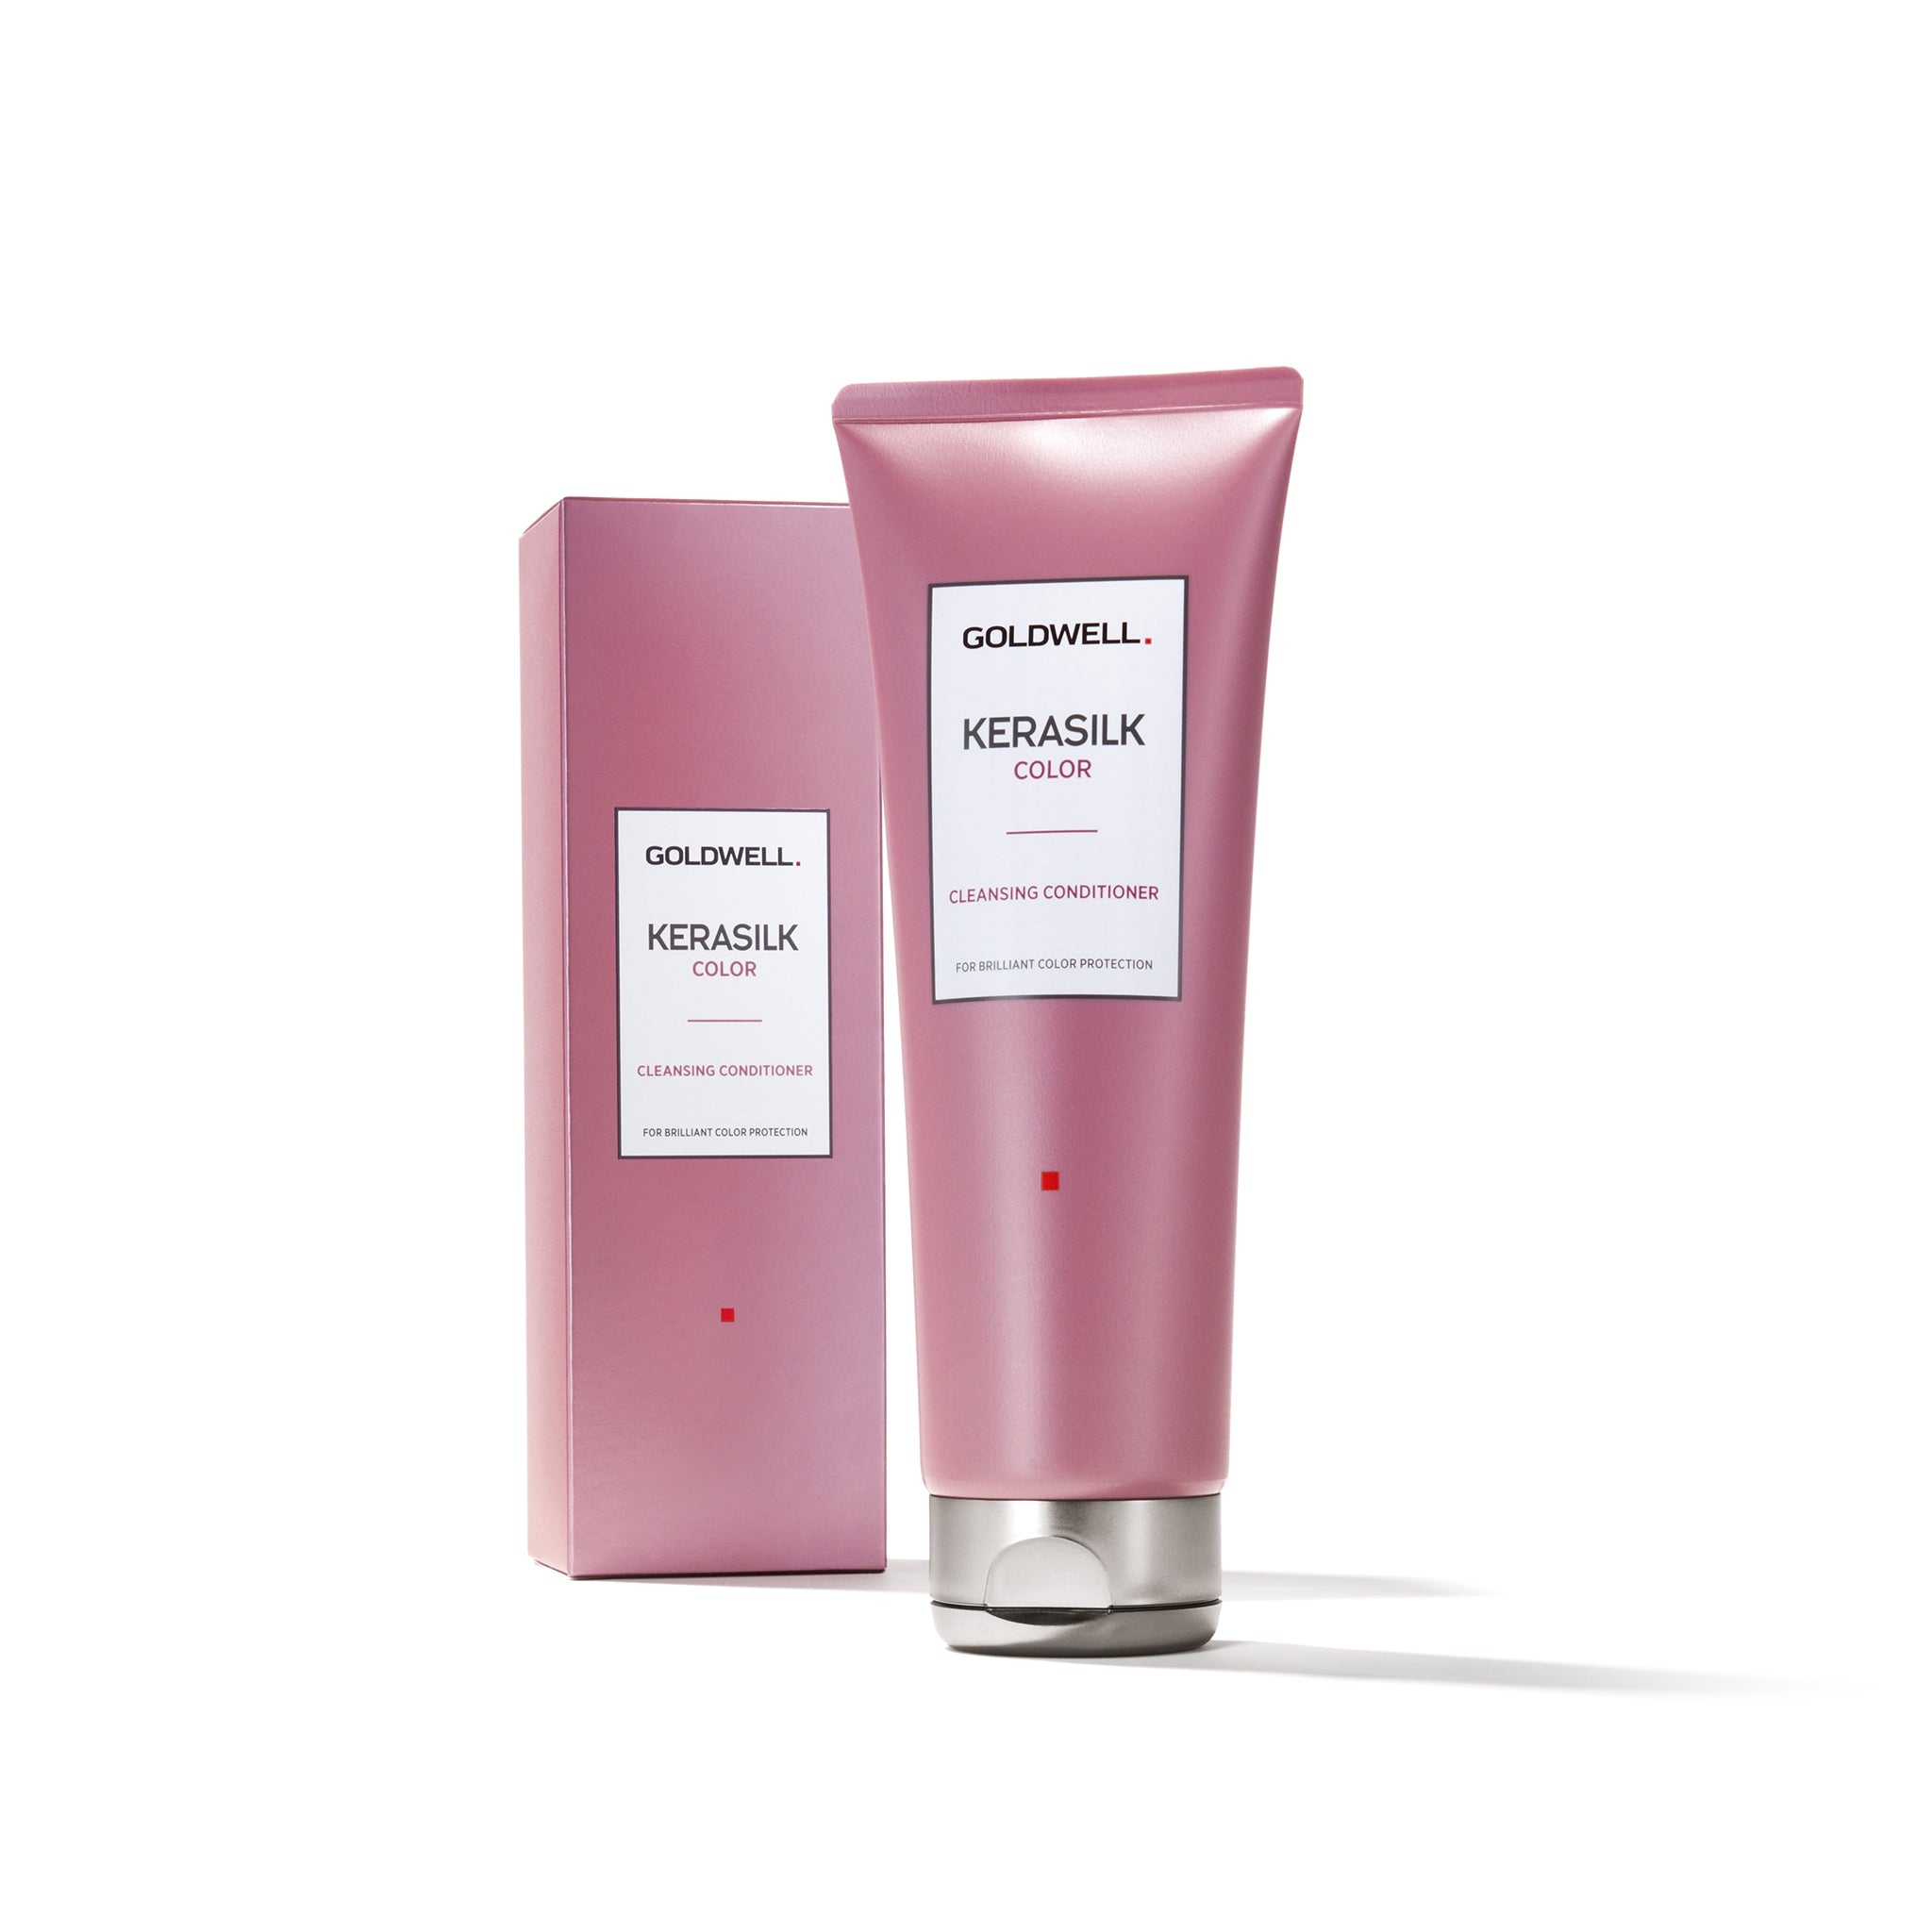 Goldwell Kerasilk Color Cleanse Conditioner 250ml